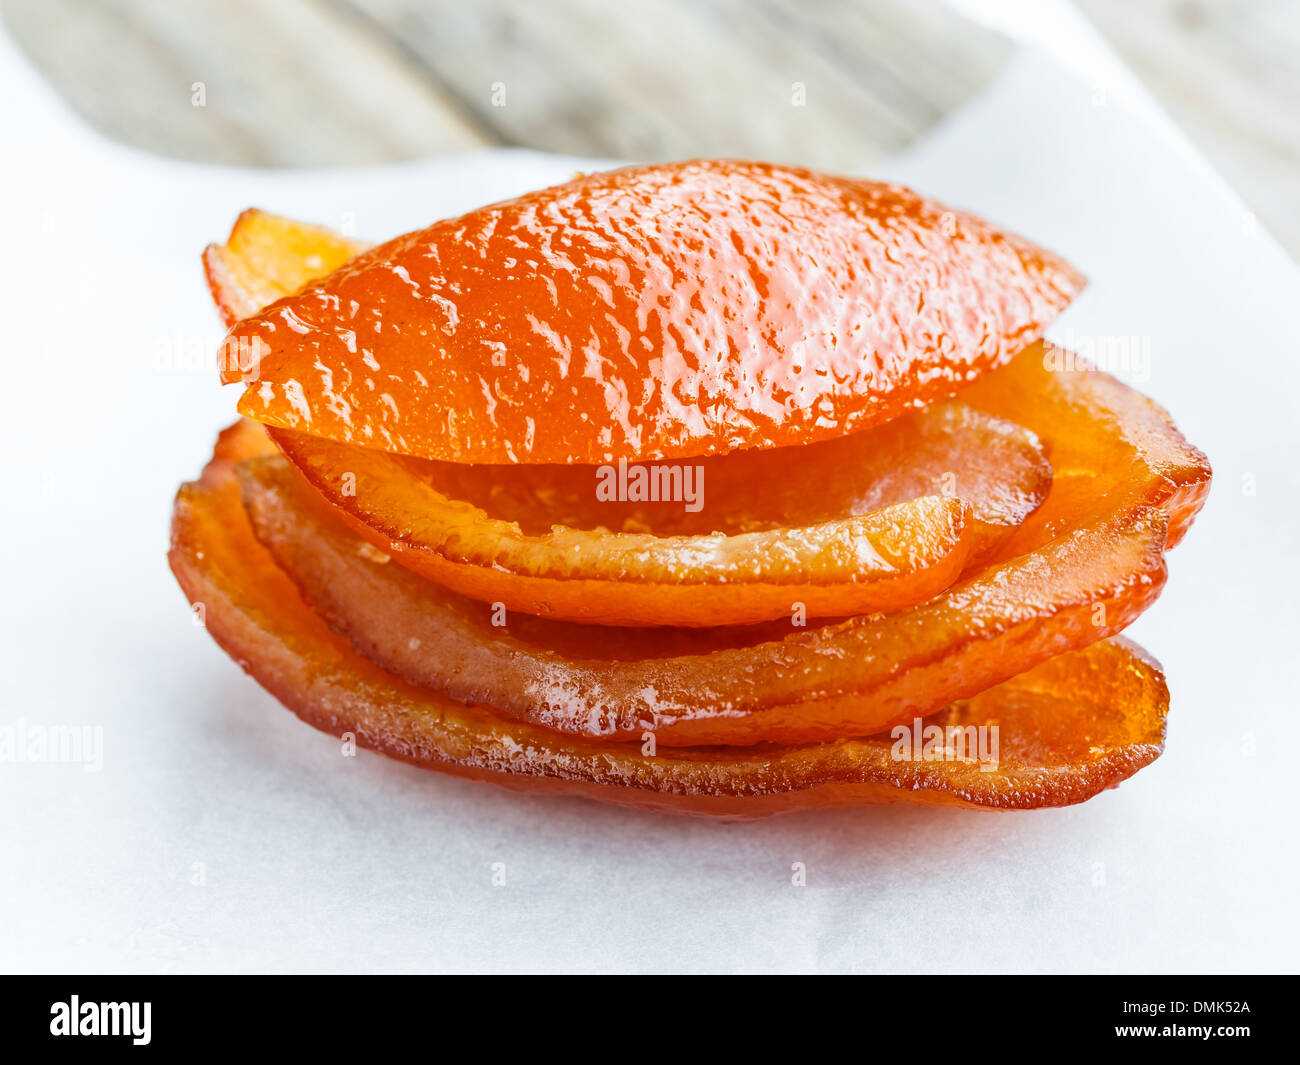 Candied orange peel on paper - Stock Image